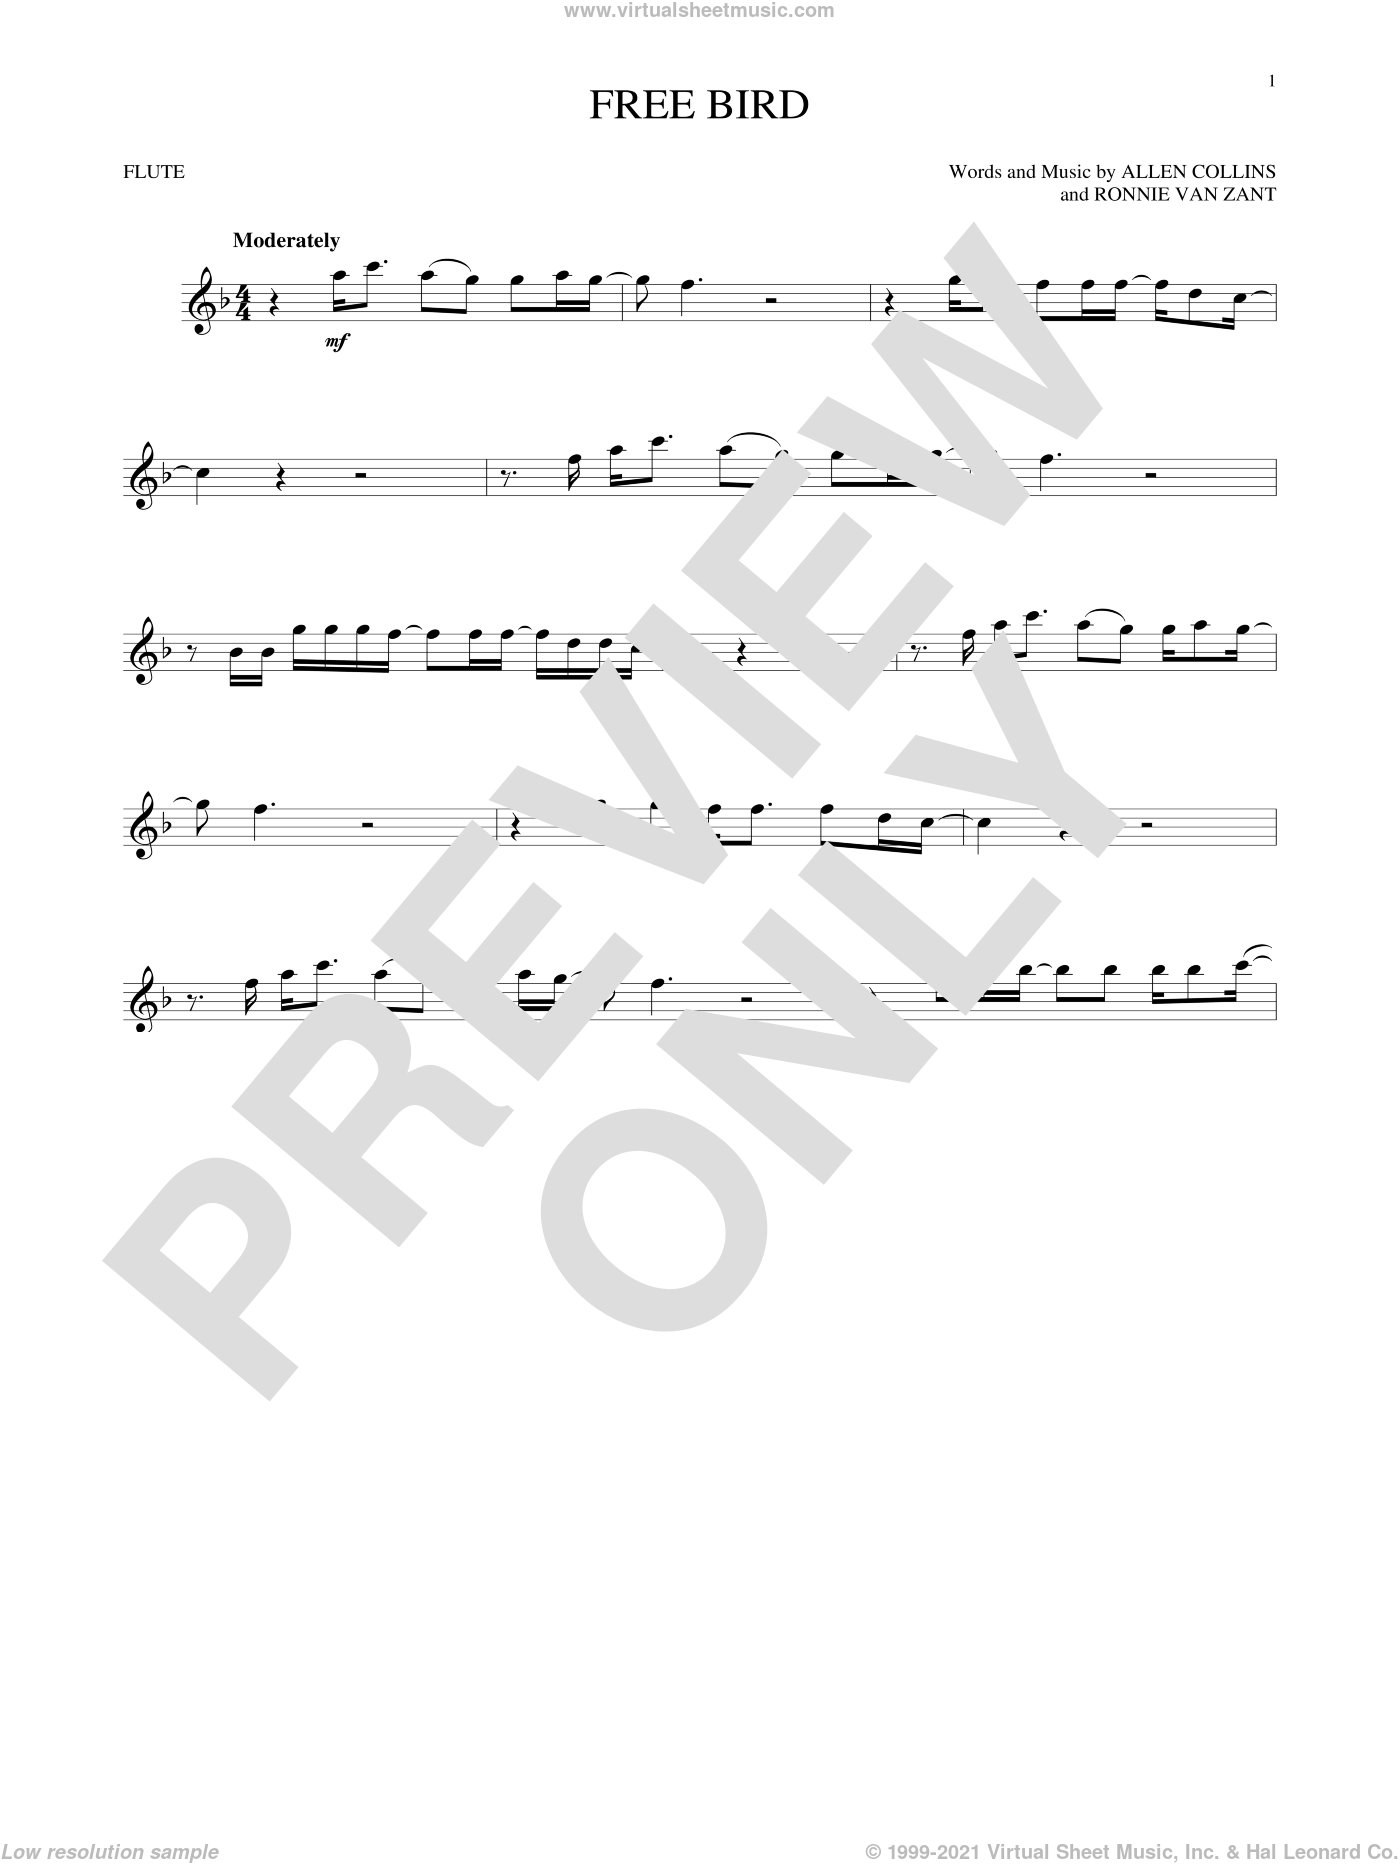 Free Bird sheet music for flute solo by Lynyrd Skynyrd, Allen Collins and Ronnie Van Zant, intermediate skill level